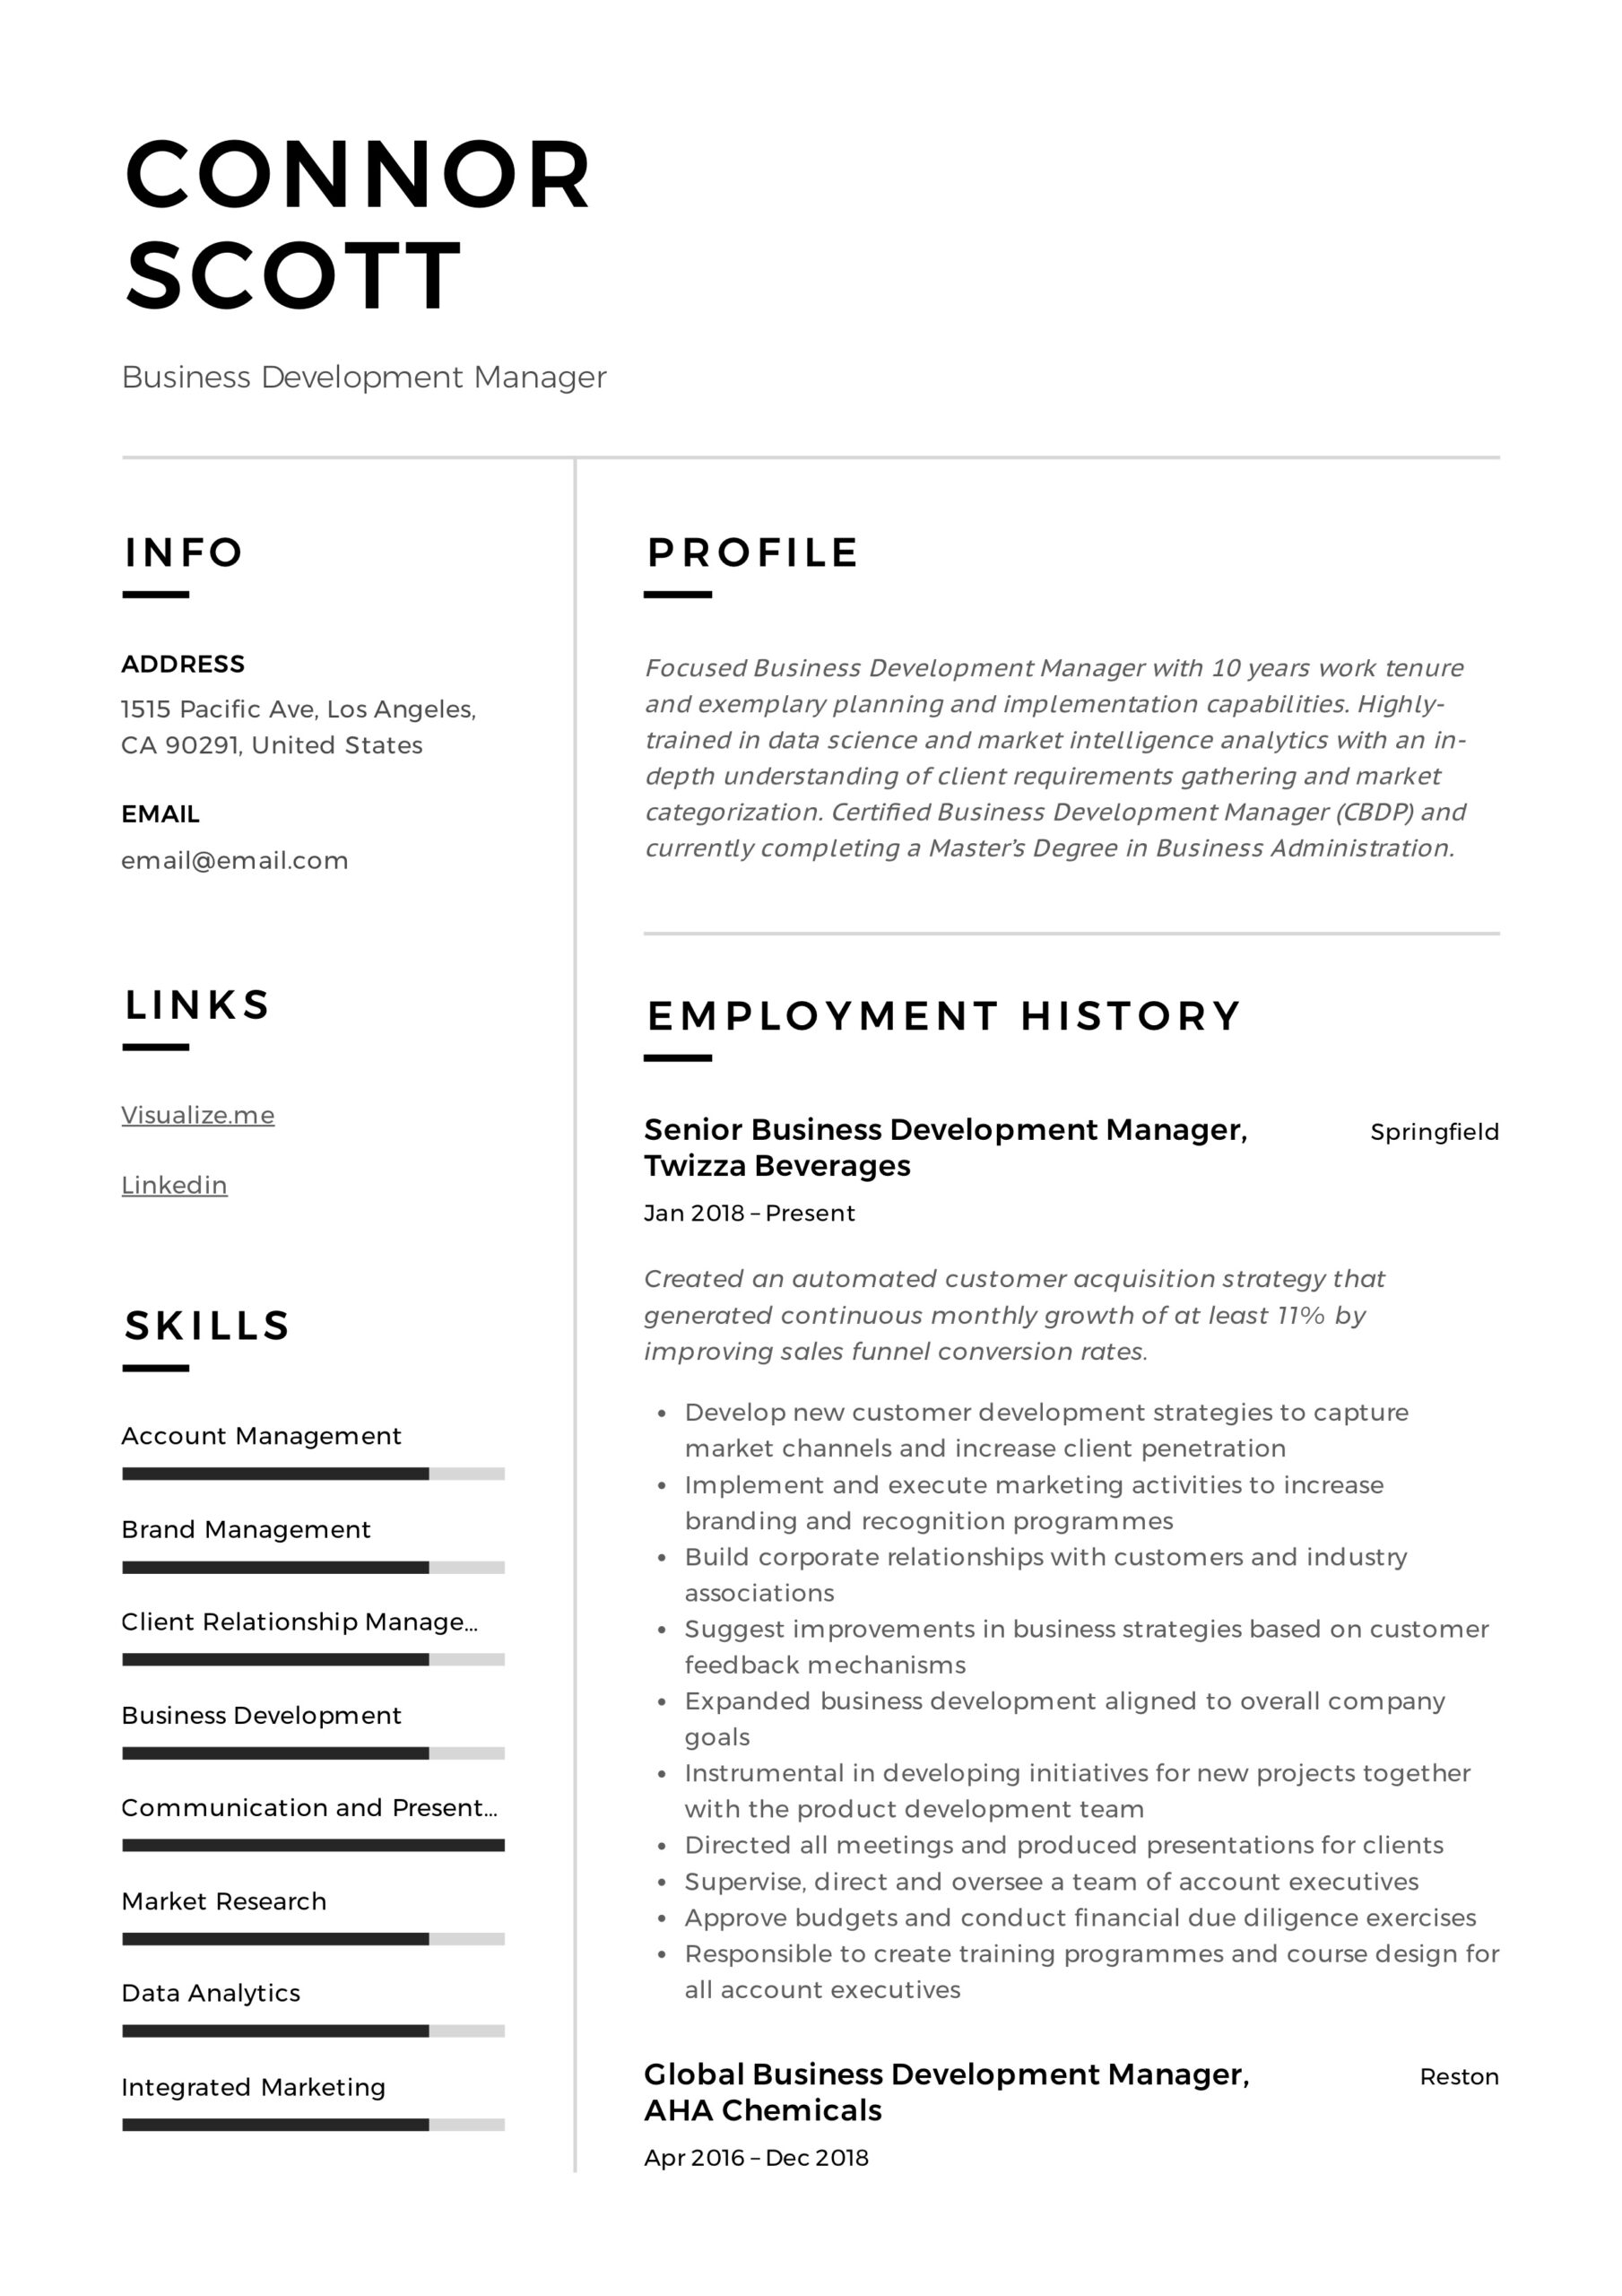 business development manager resume guide templates pdf skills on sba template guest Resume Business Development Skills On Resume